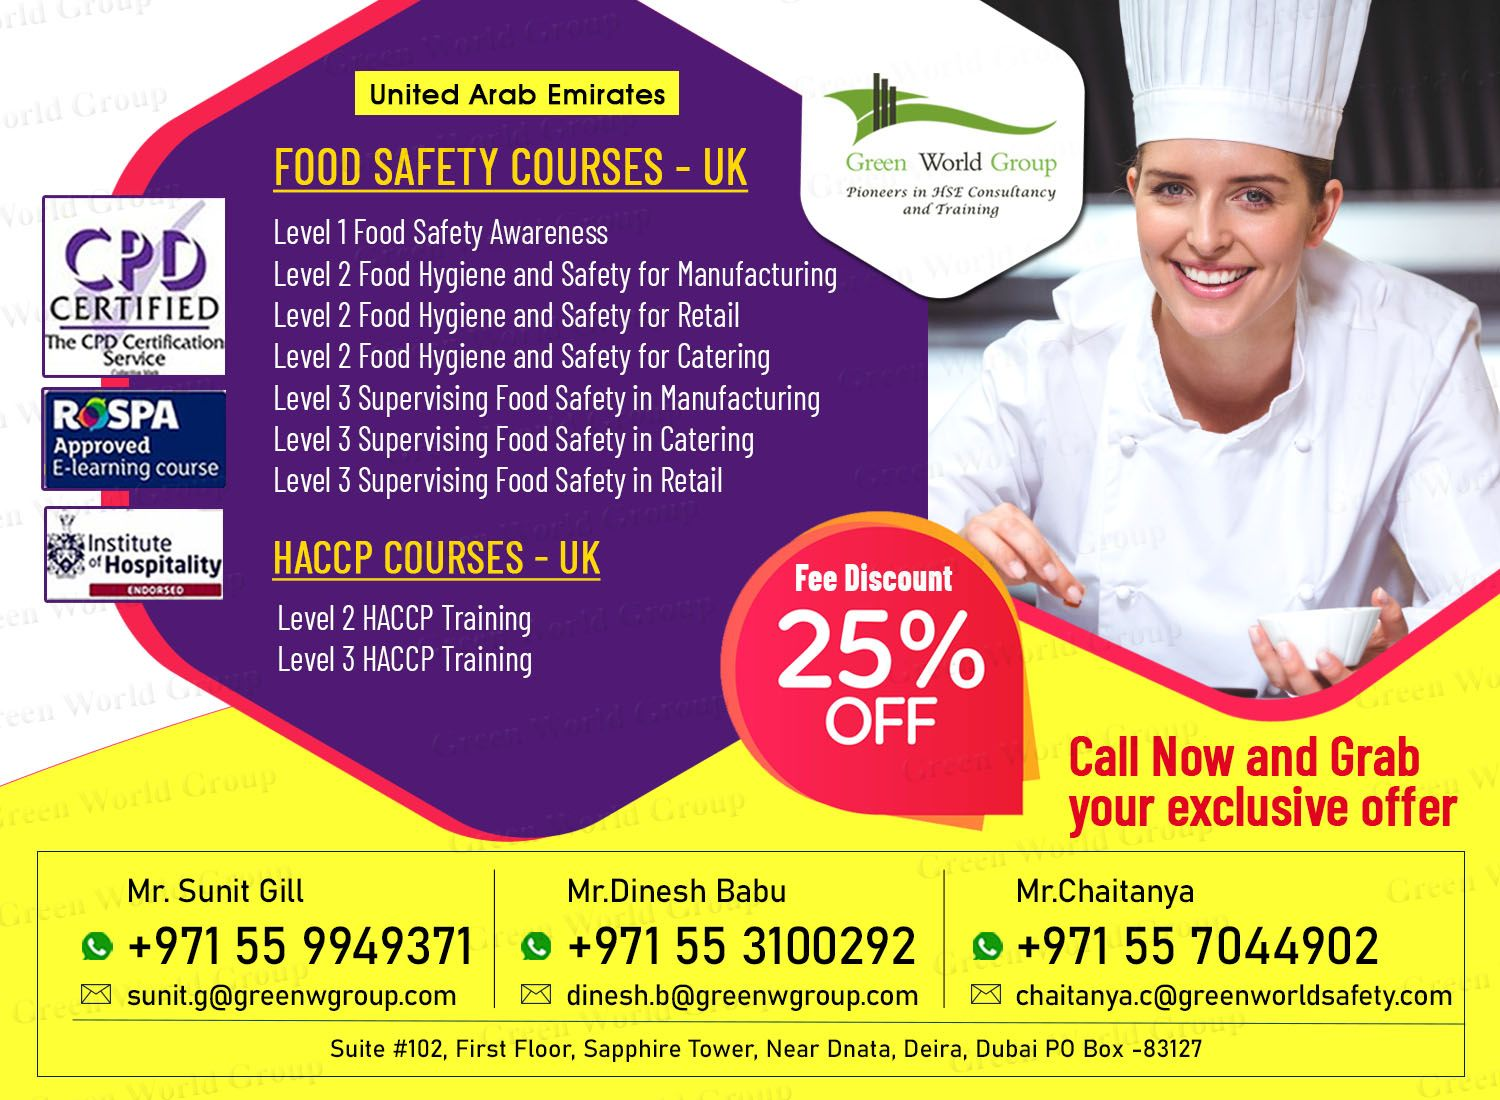 Enrol for Food Safety Courses in UAE 25 Discount in